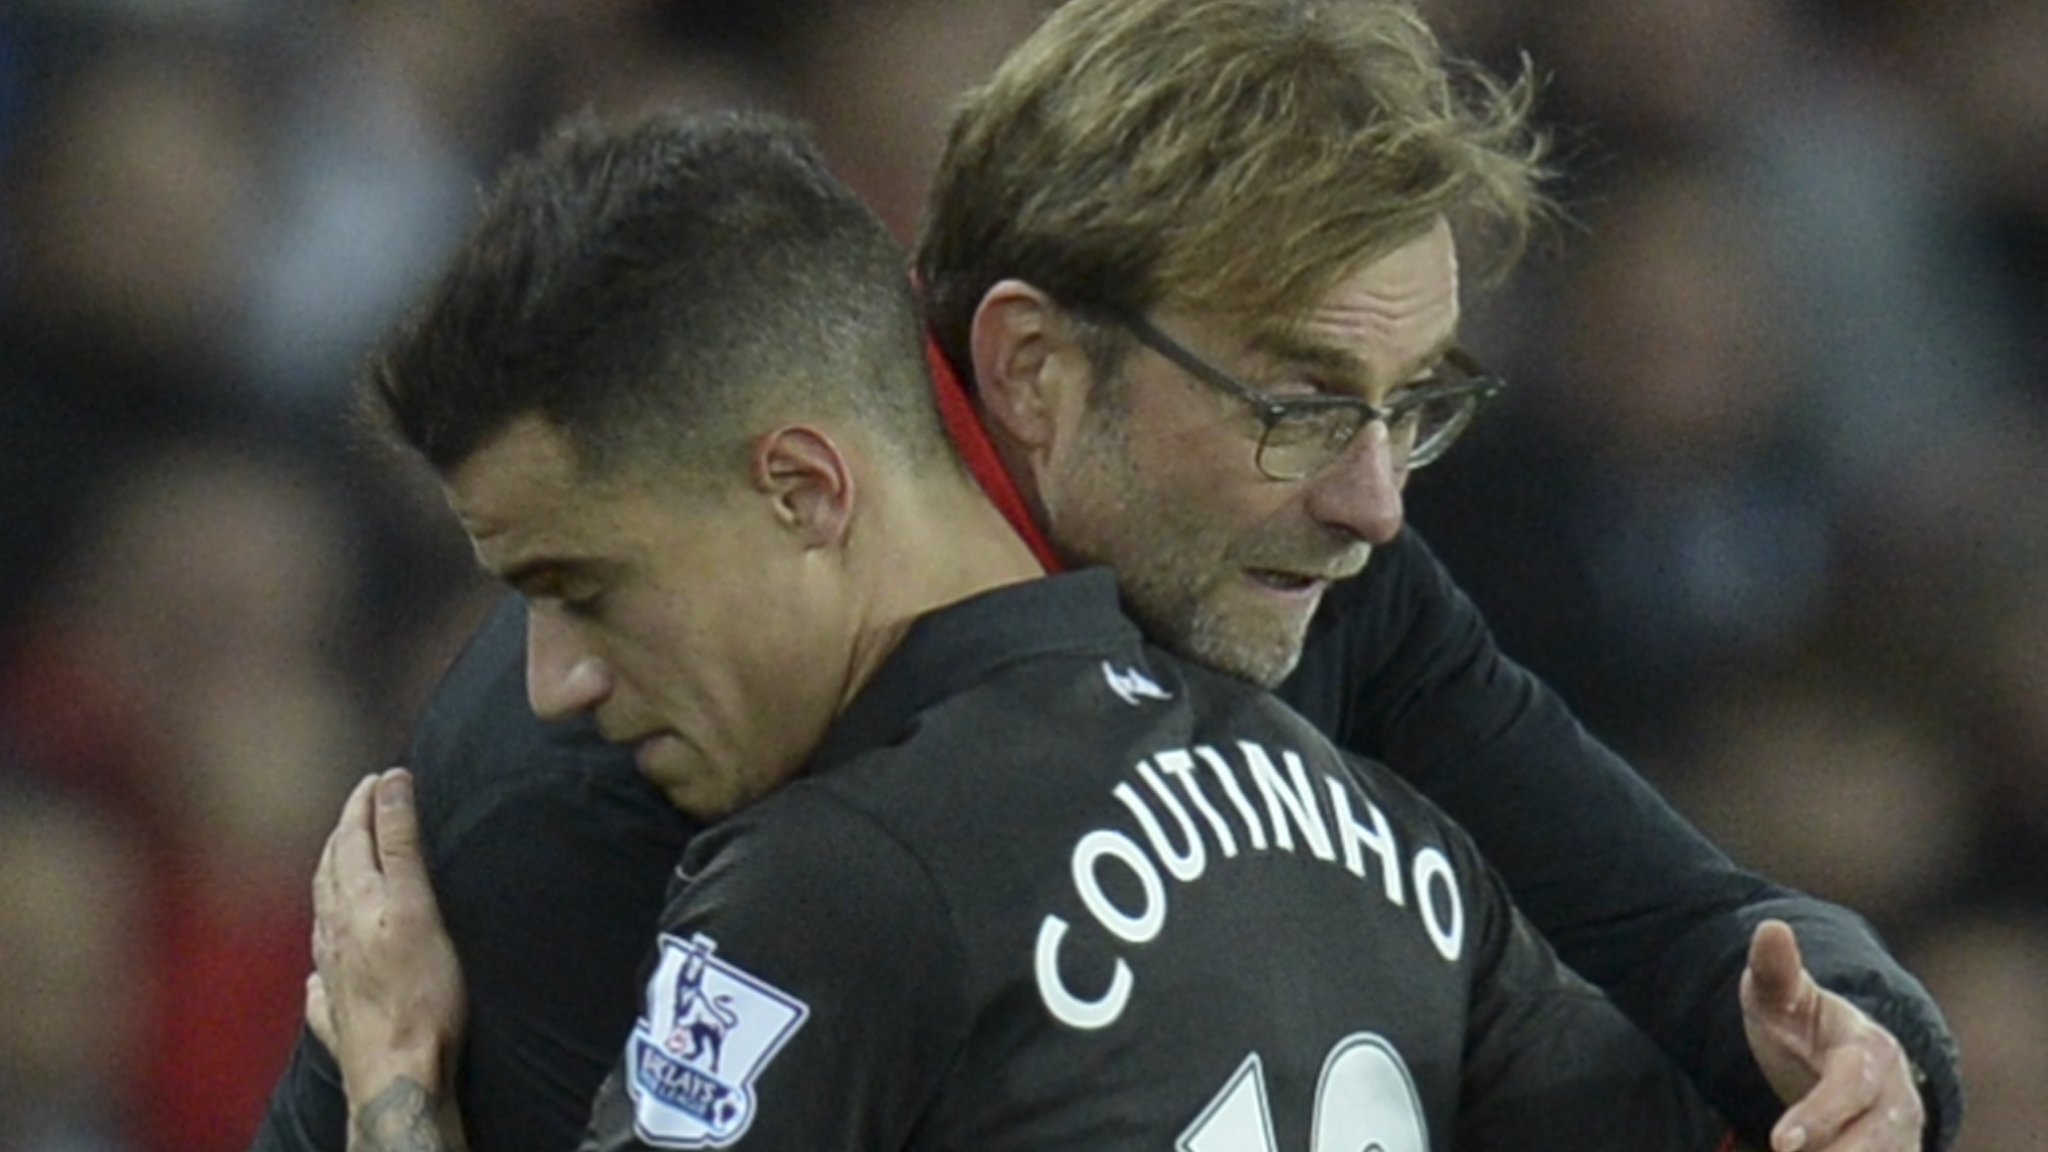 Philippe Coutinho: Liverpool do not want to sell midfielder, says Jurgen Klopp